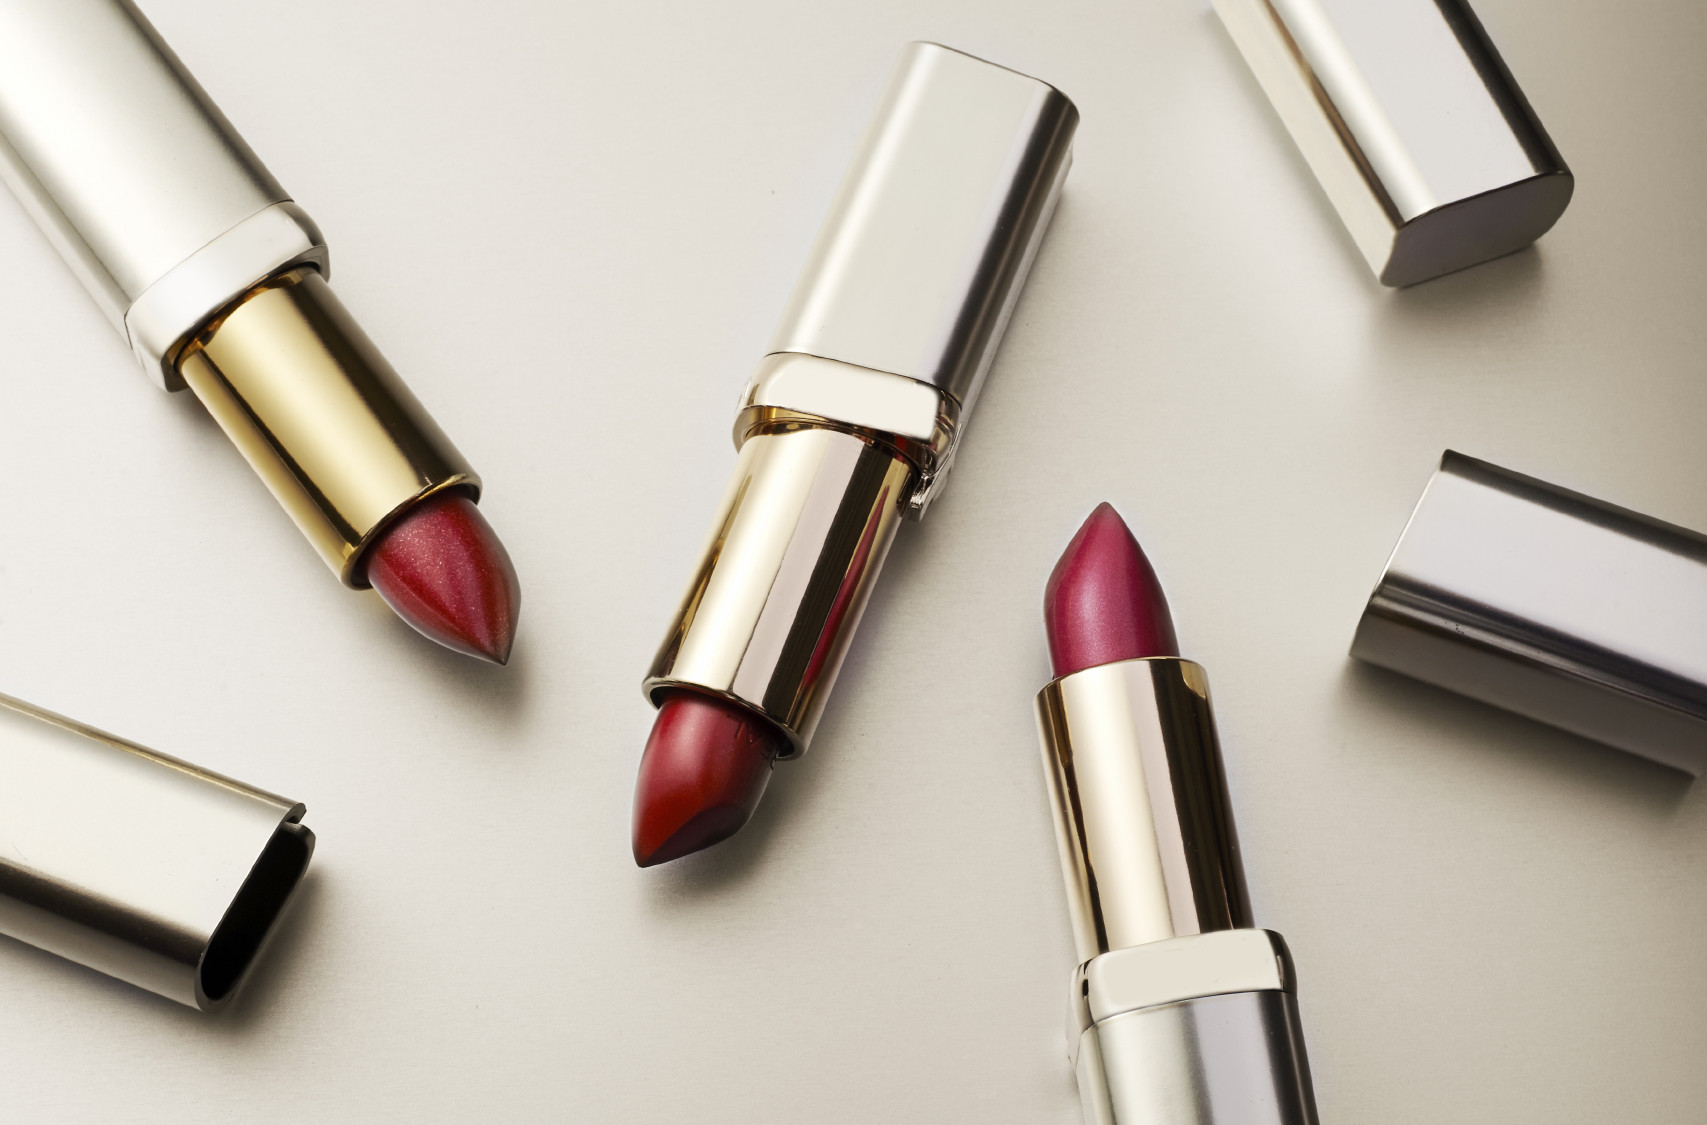 Lipstick shades you should try according to your zodiac sign the biocorpaavc Images